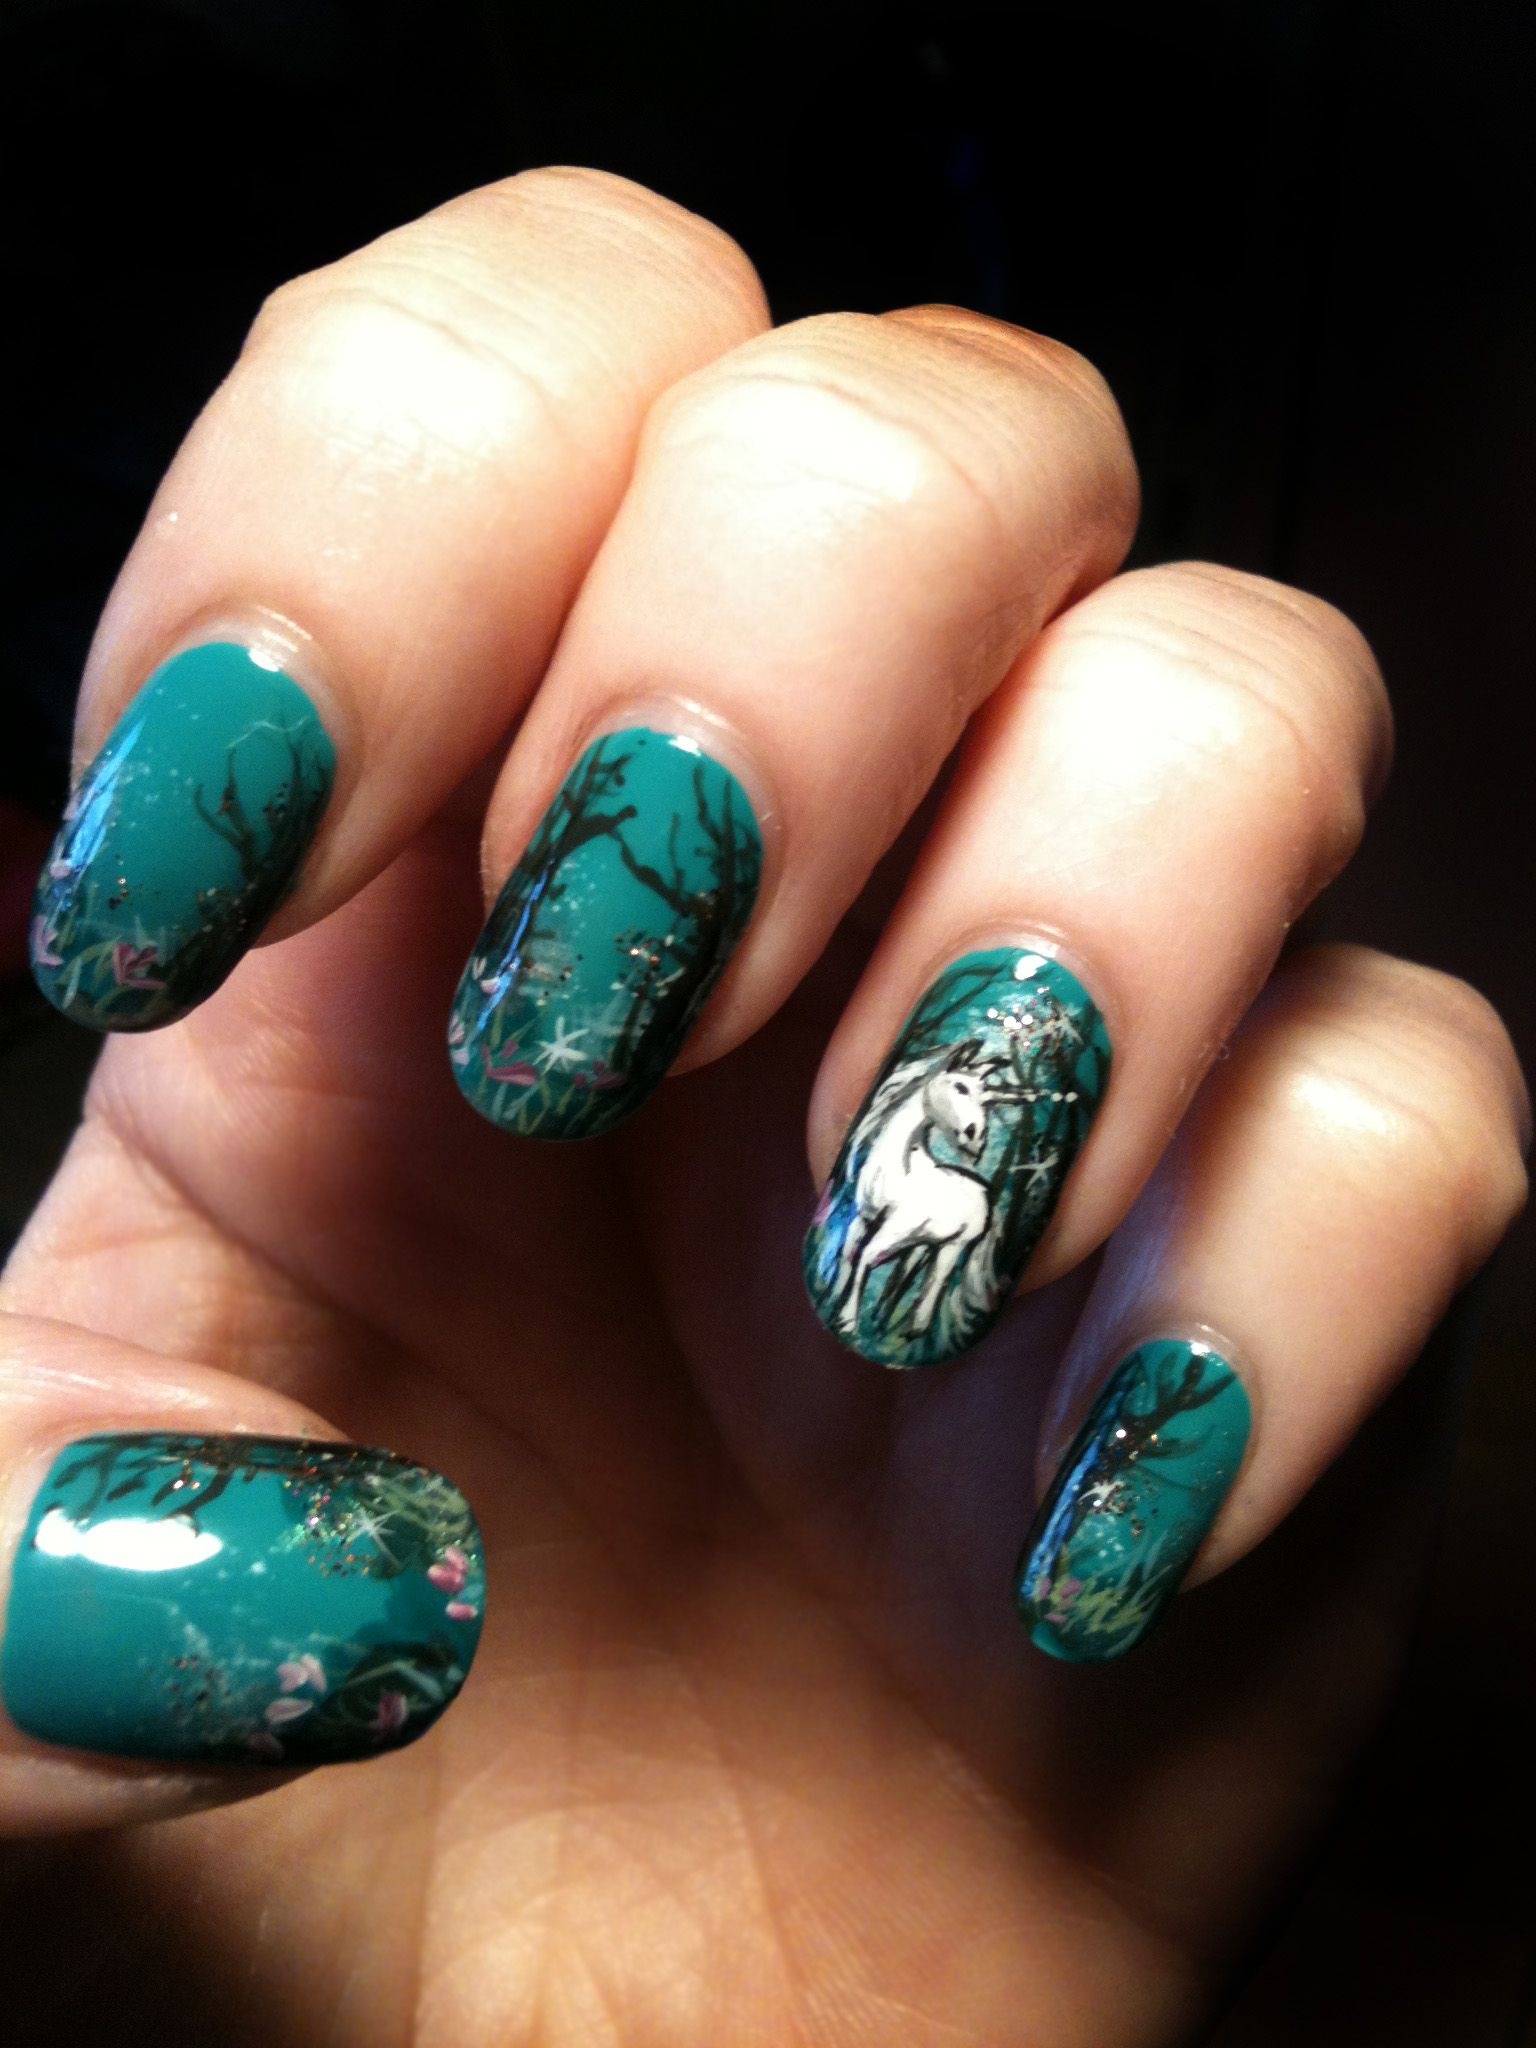 A white Unicorn wandering in an enchanted forest. Nail art by me ...